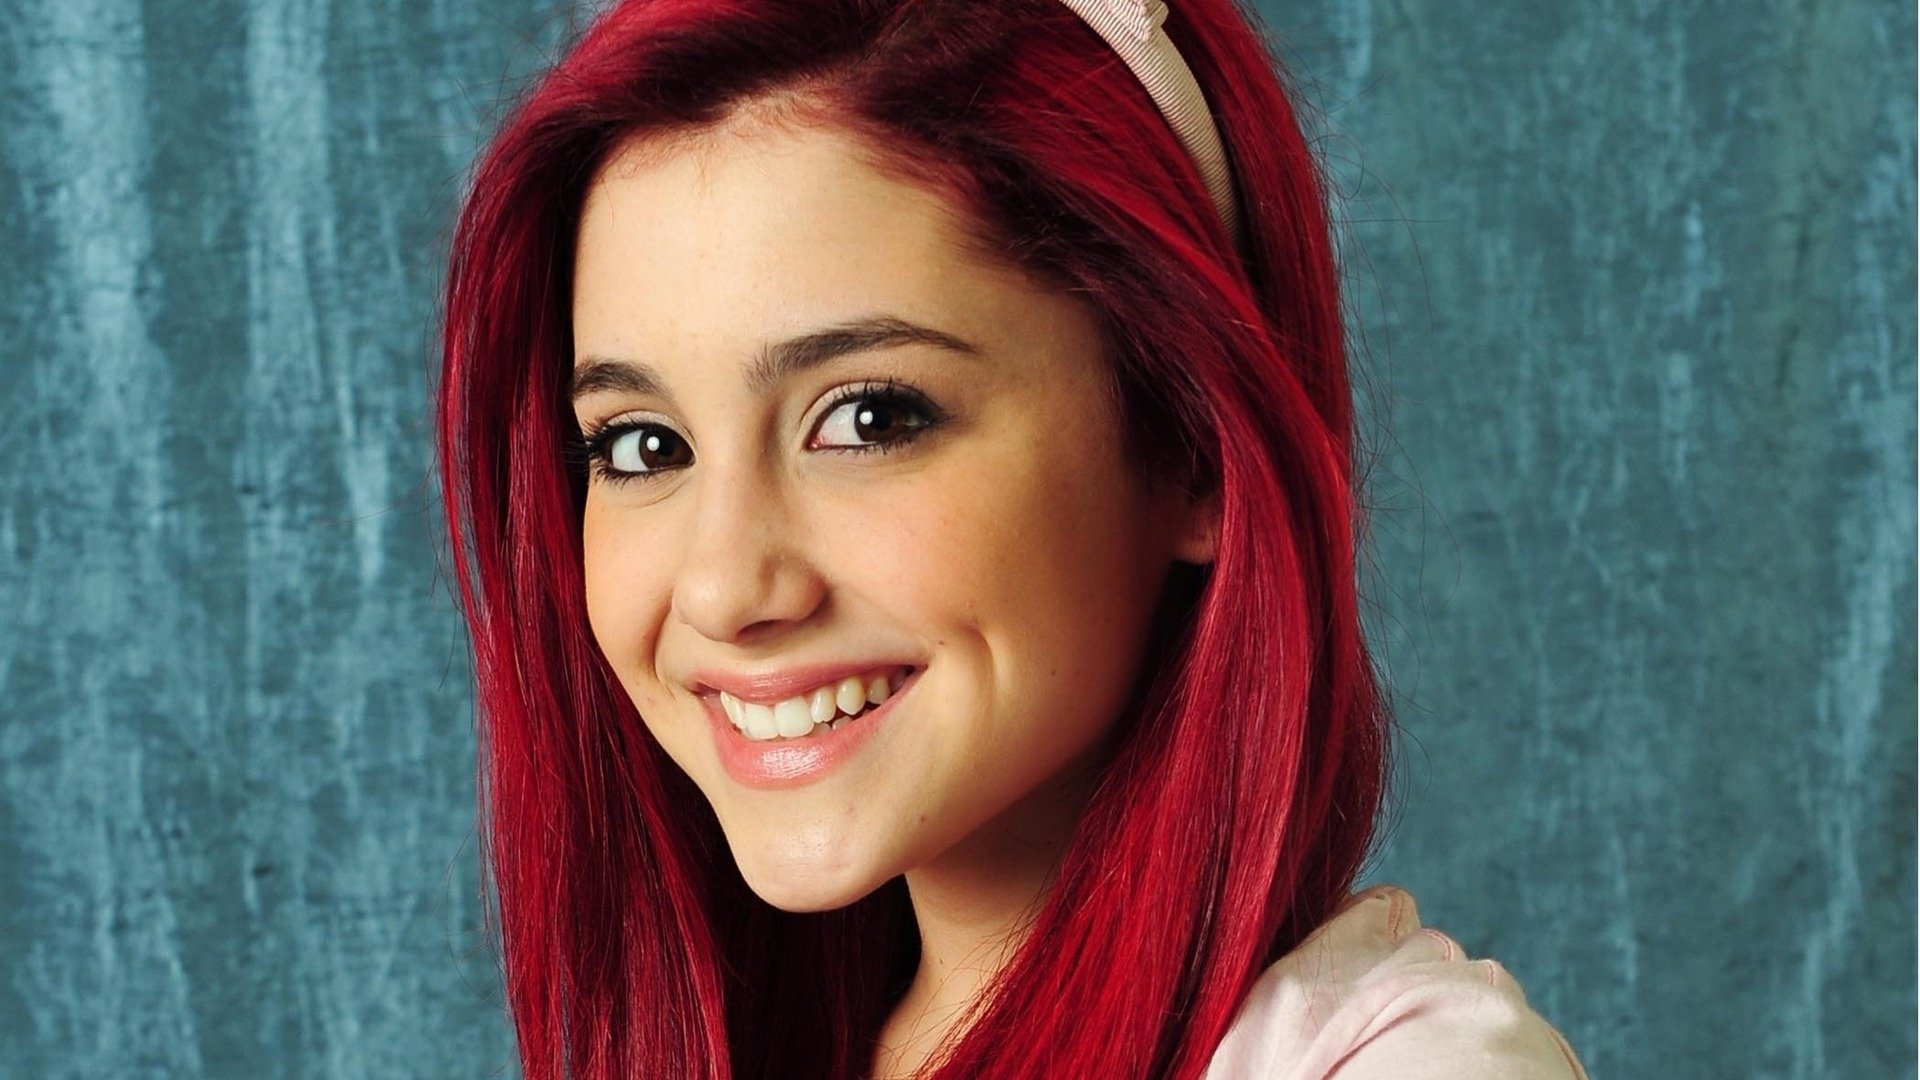 Awesome Ariana Grande free wallpaper ID:132238 for 1080p desktop